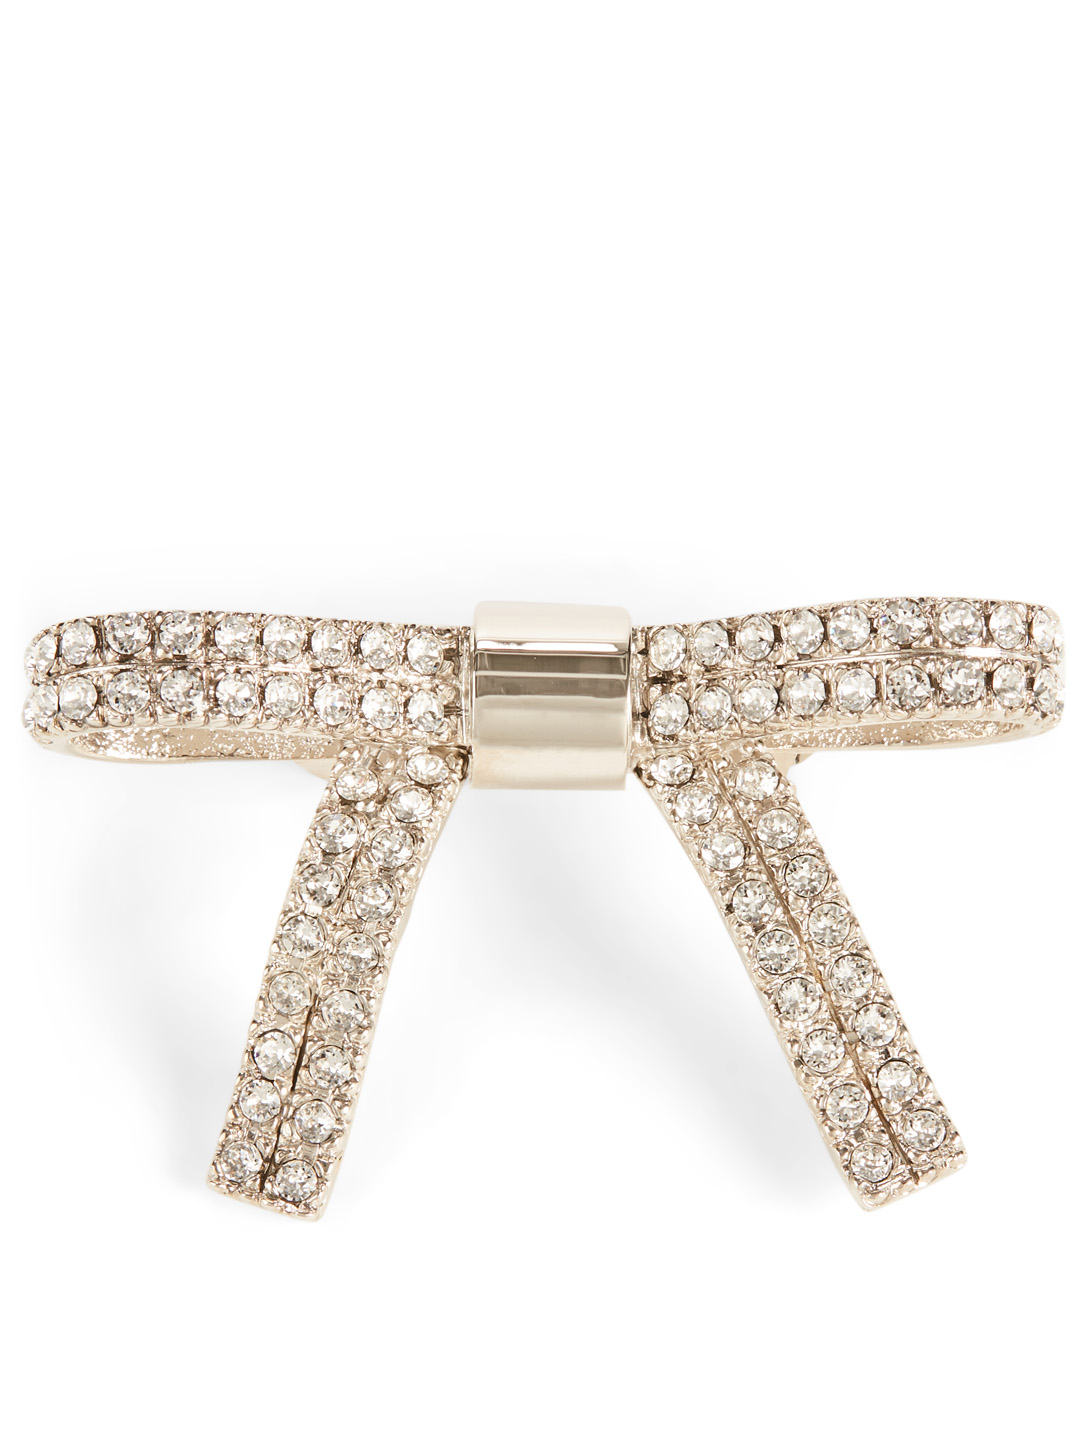 MIU MIU Barrette With Crystals Womens Silver